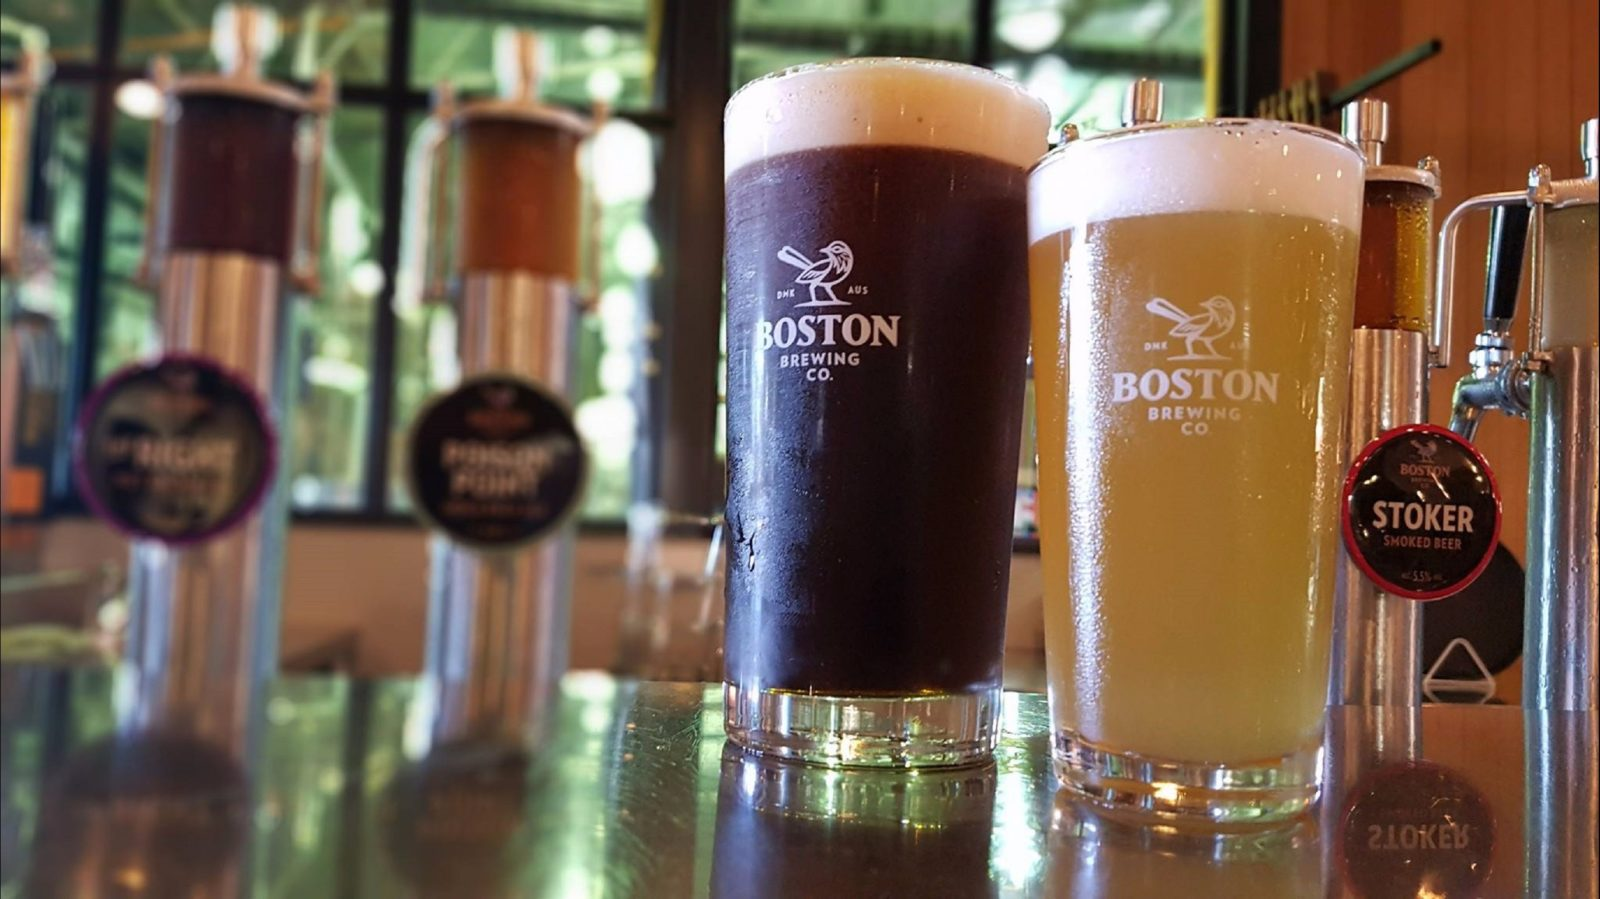 Boston Brewing Co, Denmark, Western Australia